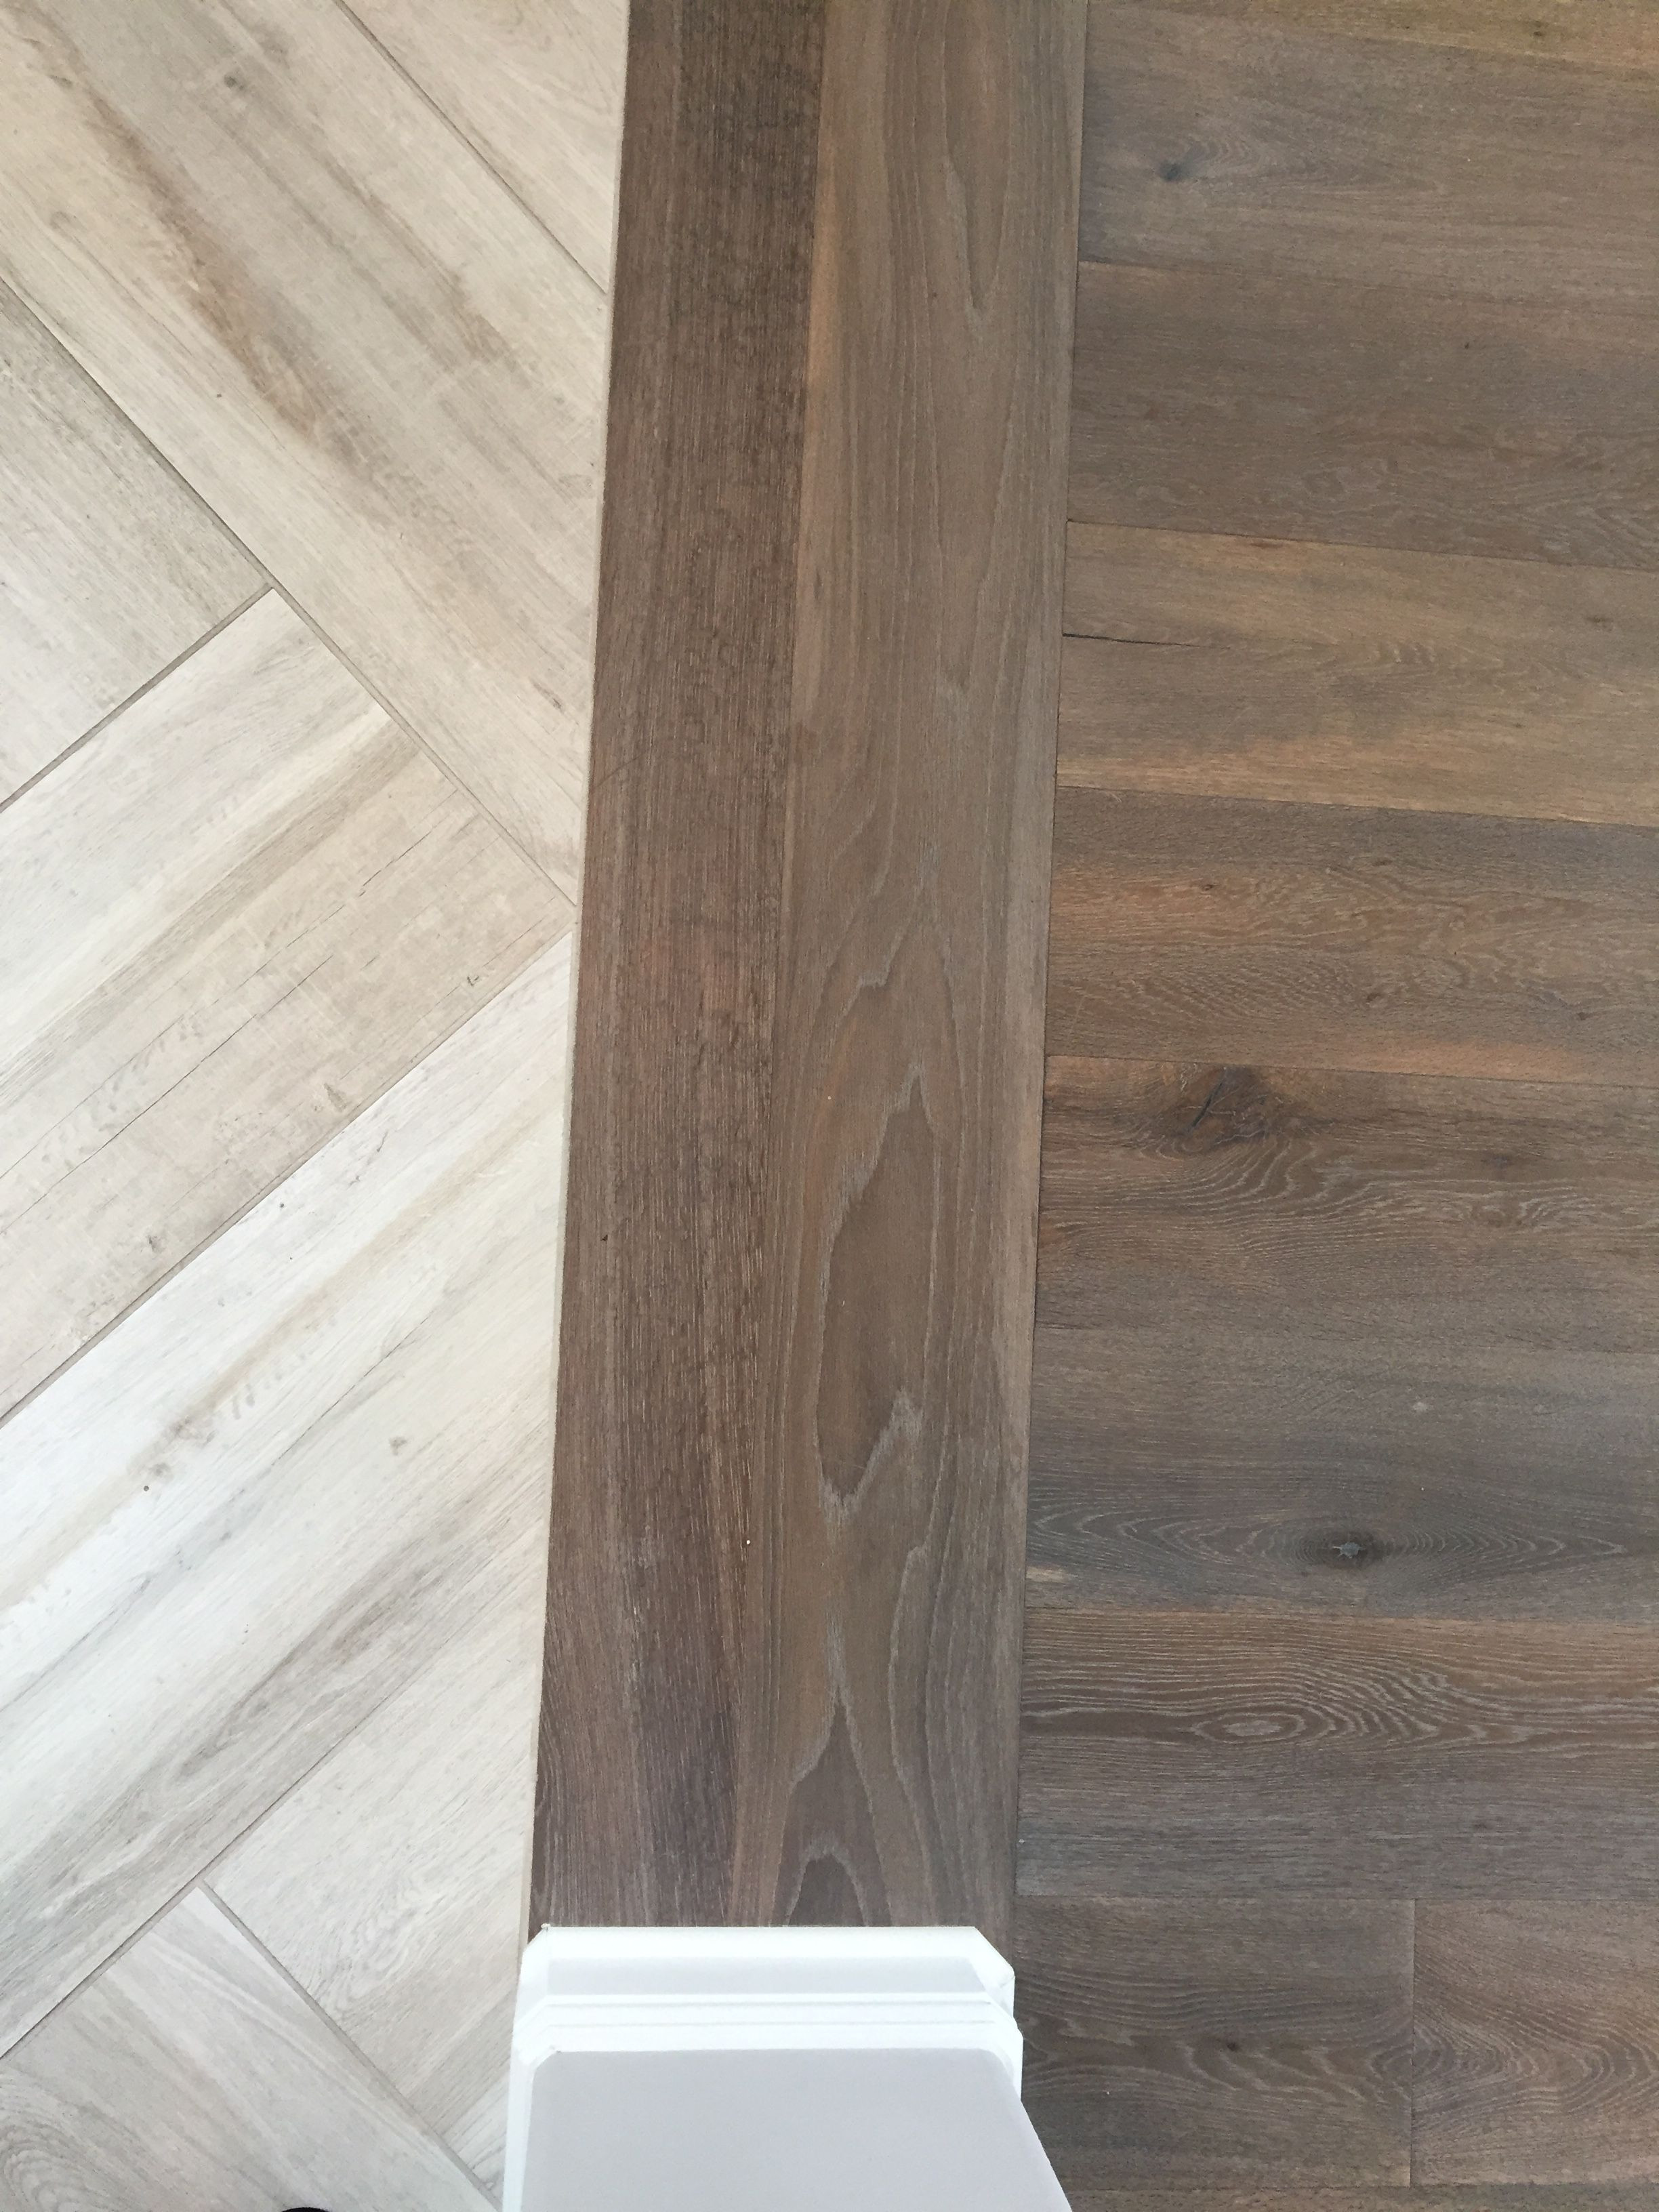 how to install fake hardwood floors of floor transition laminate to herringbone tile pattern model within floor transition laminate to herringbone tile pattern herringbone tile pattern herringbone wood floor